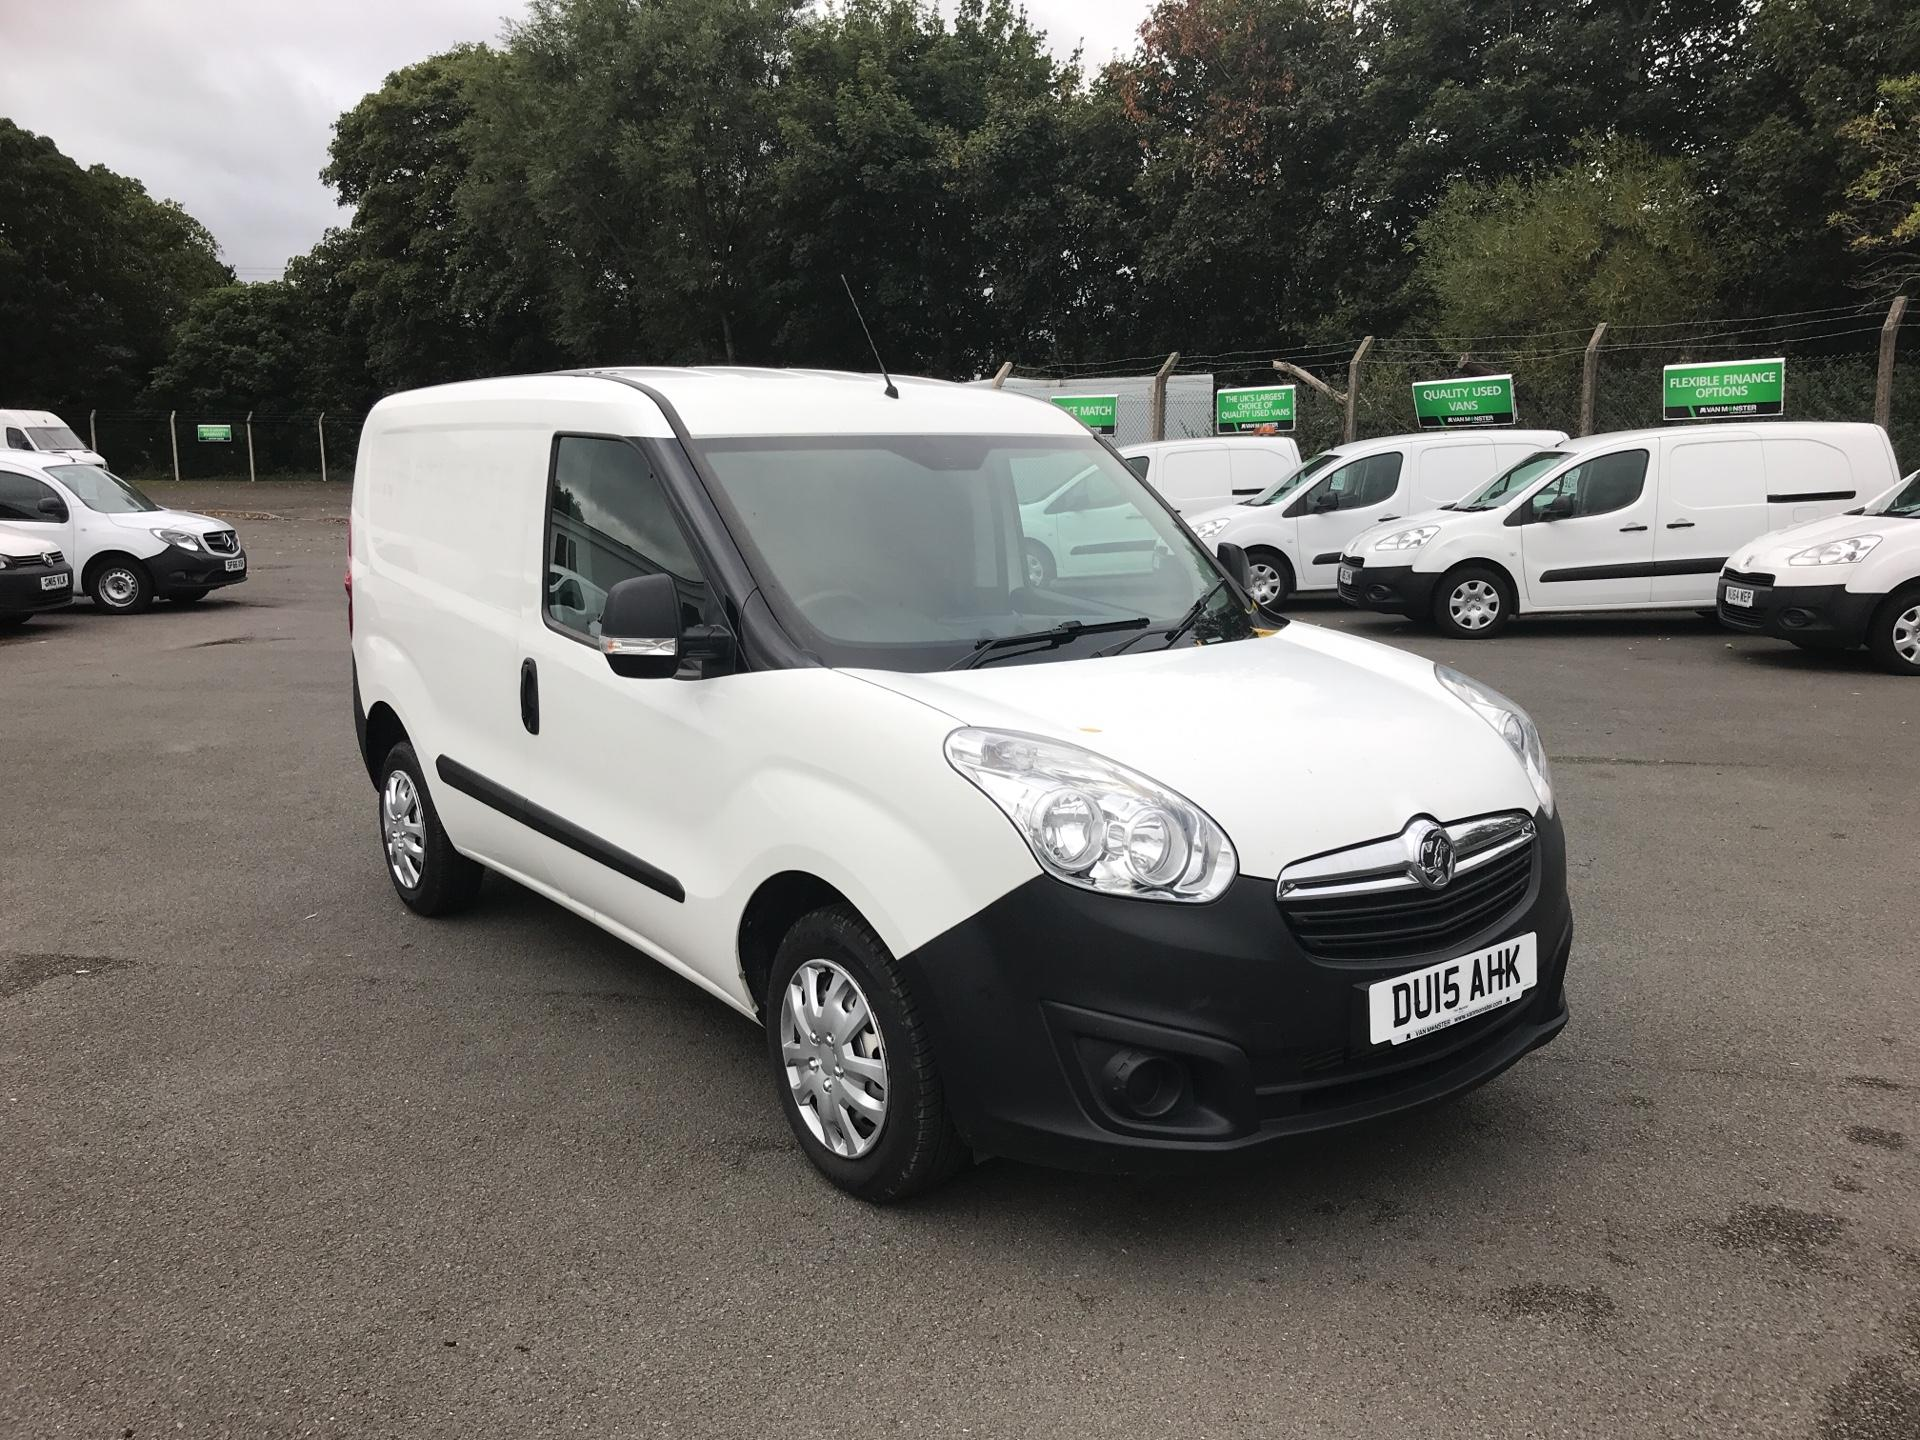 2015 Vauxhall Combo  L1 H1 200 1.3 16V EURO 5 *VALUE RANGE VEHICLE - CONDITION REFLECTED IN PRICE* (DU15AHK)